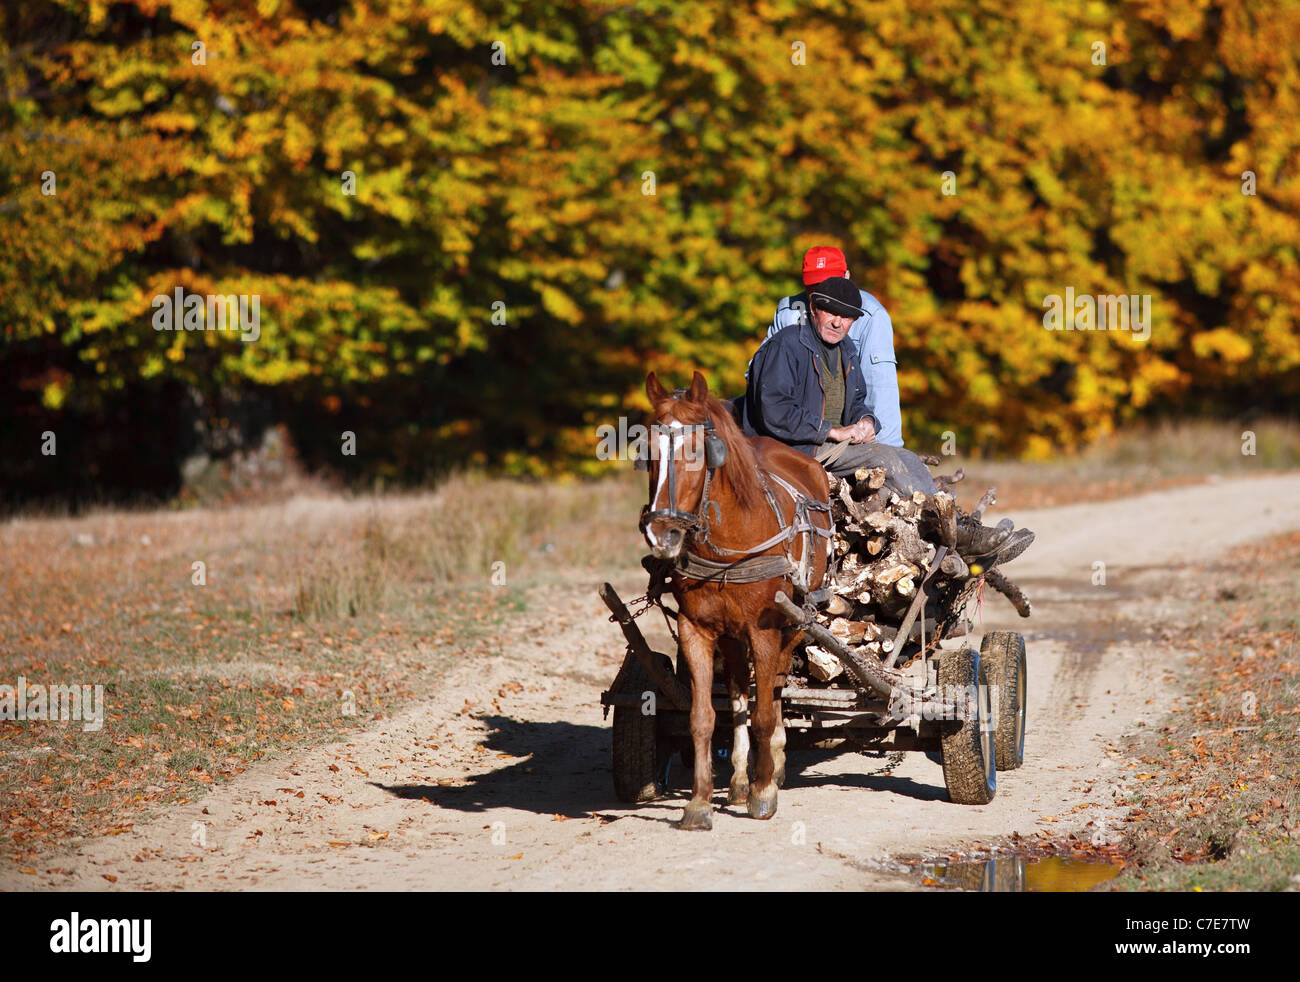 Gipsies in carriage near a beech forest in the autumn - Stock Image